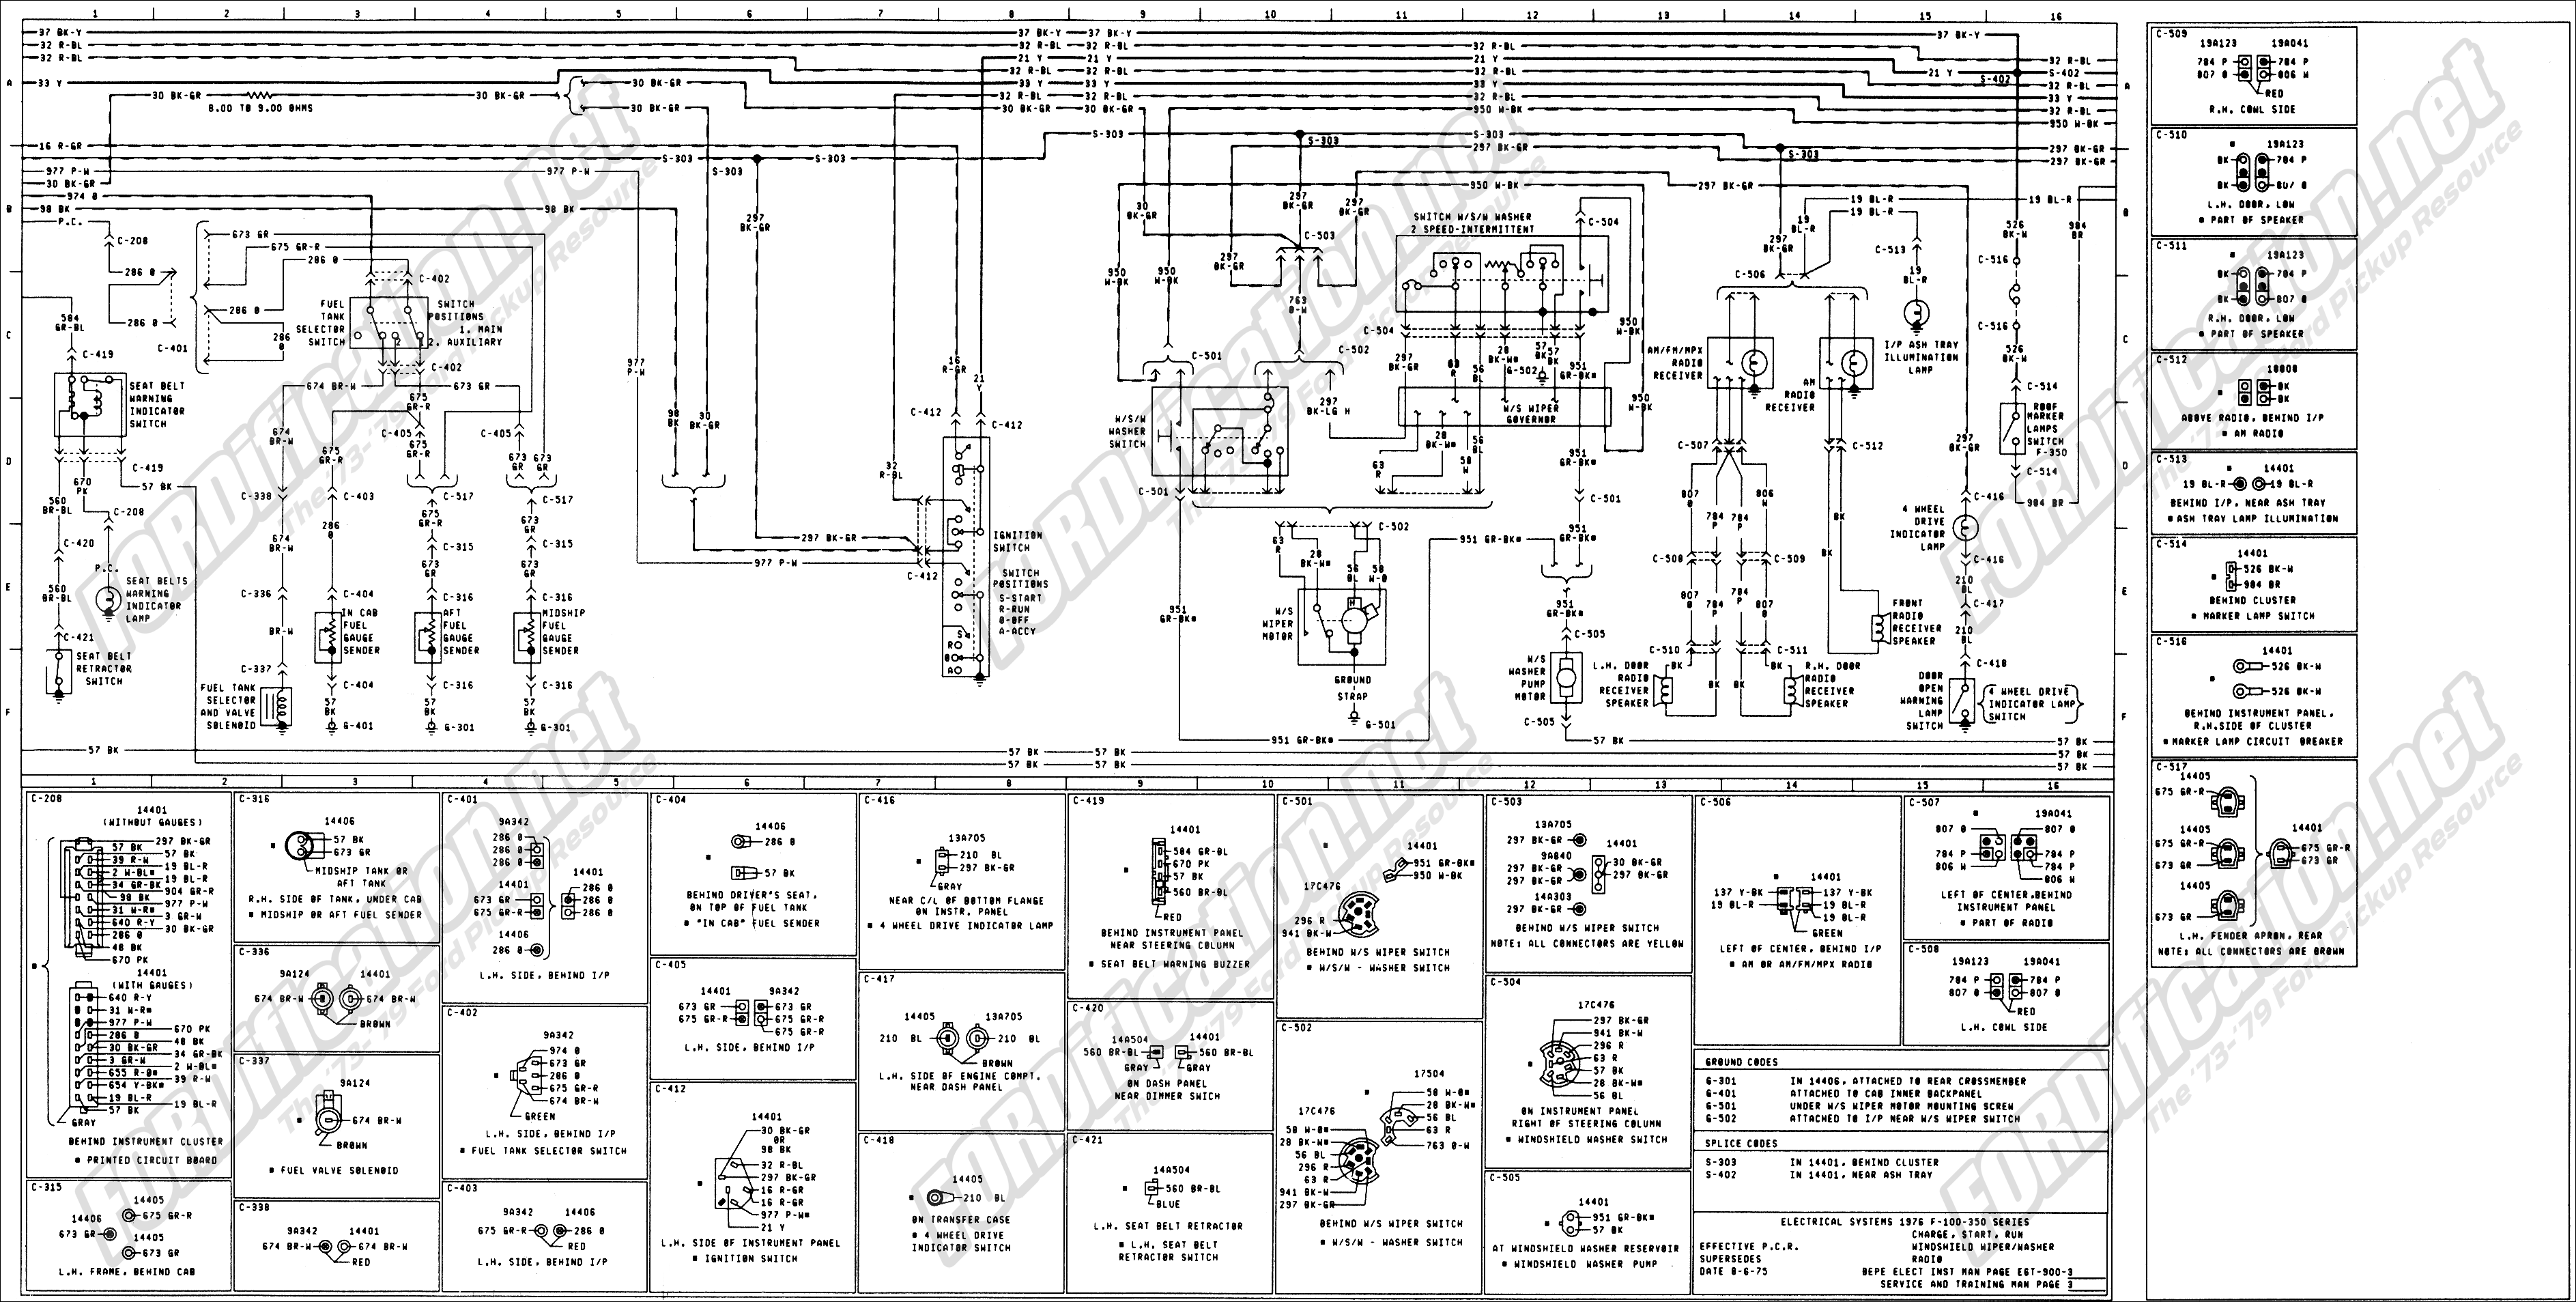 wiring_76master_3of9 1973 1979 ford truck wiring diagrams & schematics fordification net 2011 ford focus wiring diagram at panicattacktreatment.co